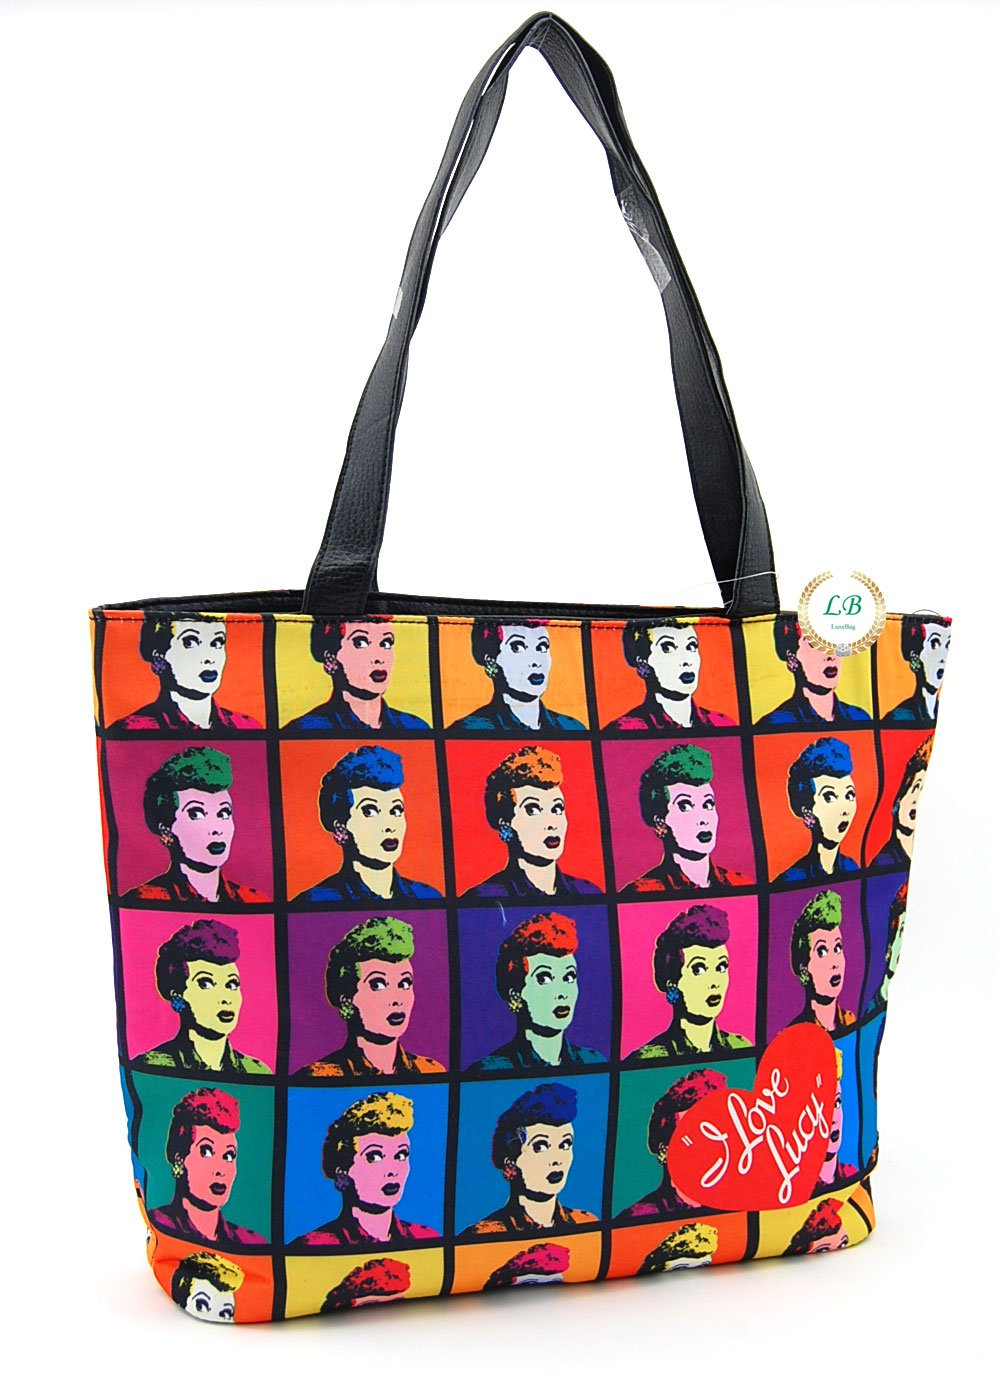 I Love Lucy Collage TV Show Purse, Collage Tote Style (Black 2)